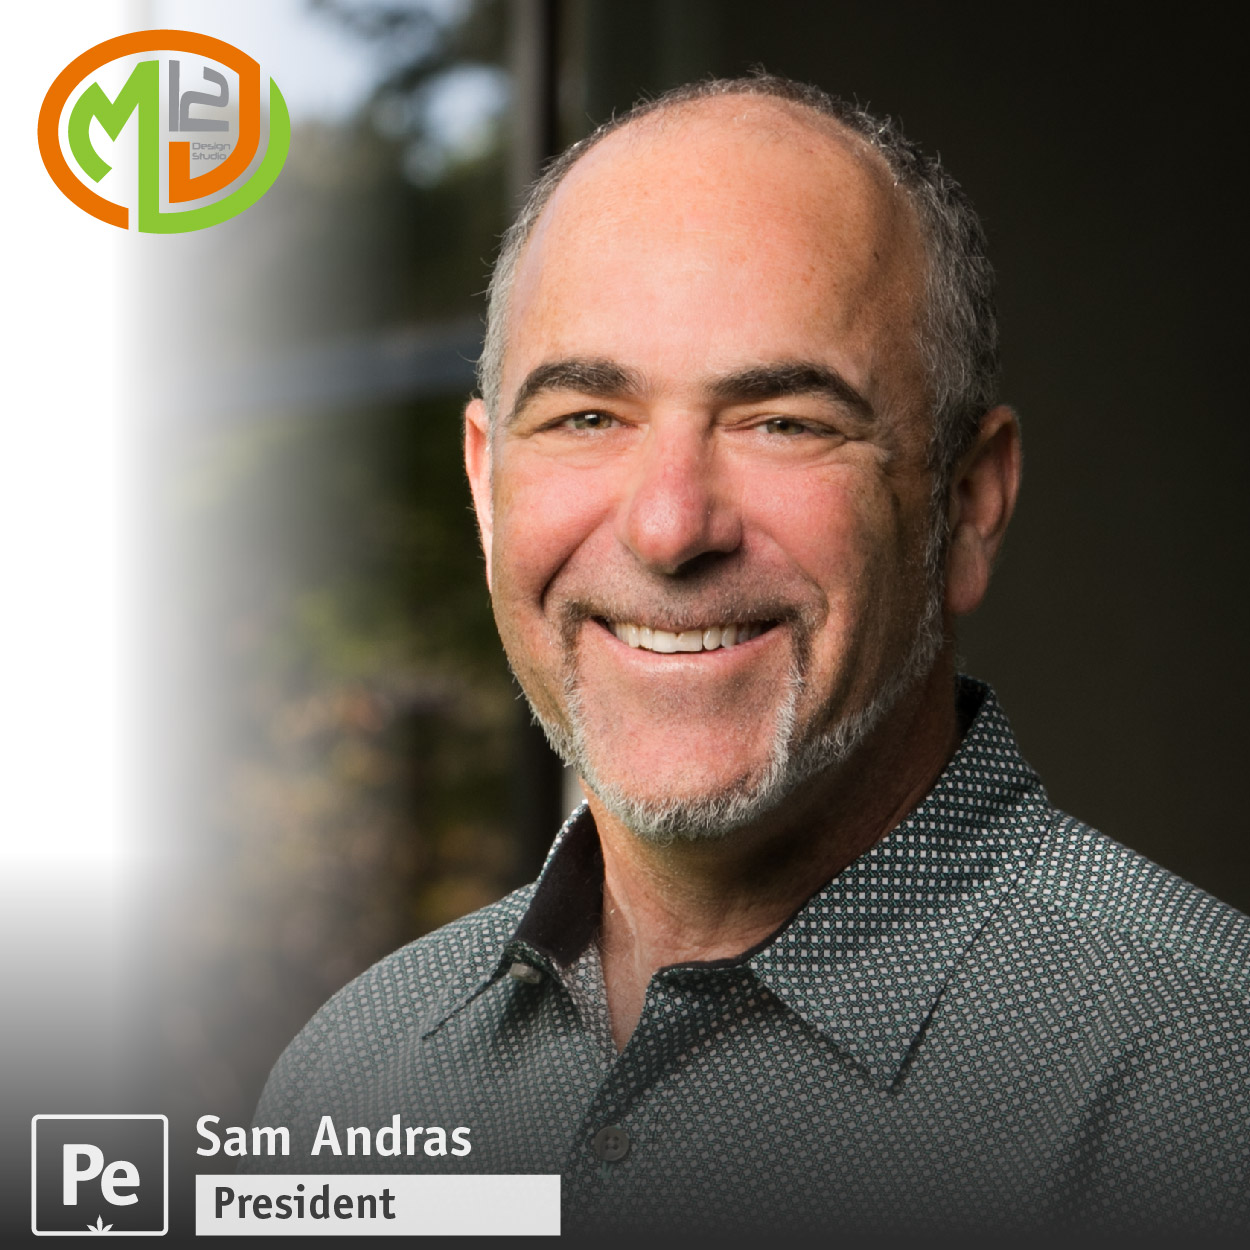 Sam Andras, President of MJ12 Design Studio, a architecture design firm that specializes in cannabis cultivation and processing facilities